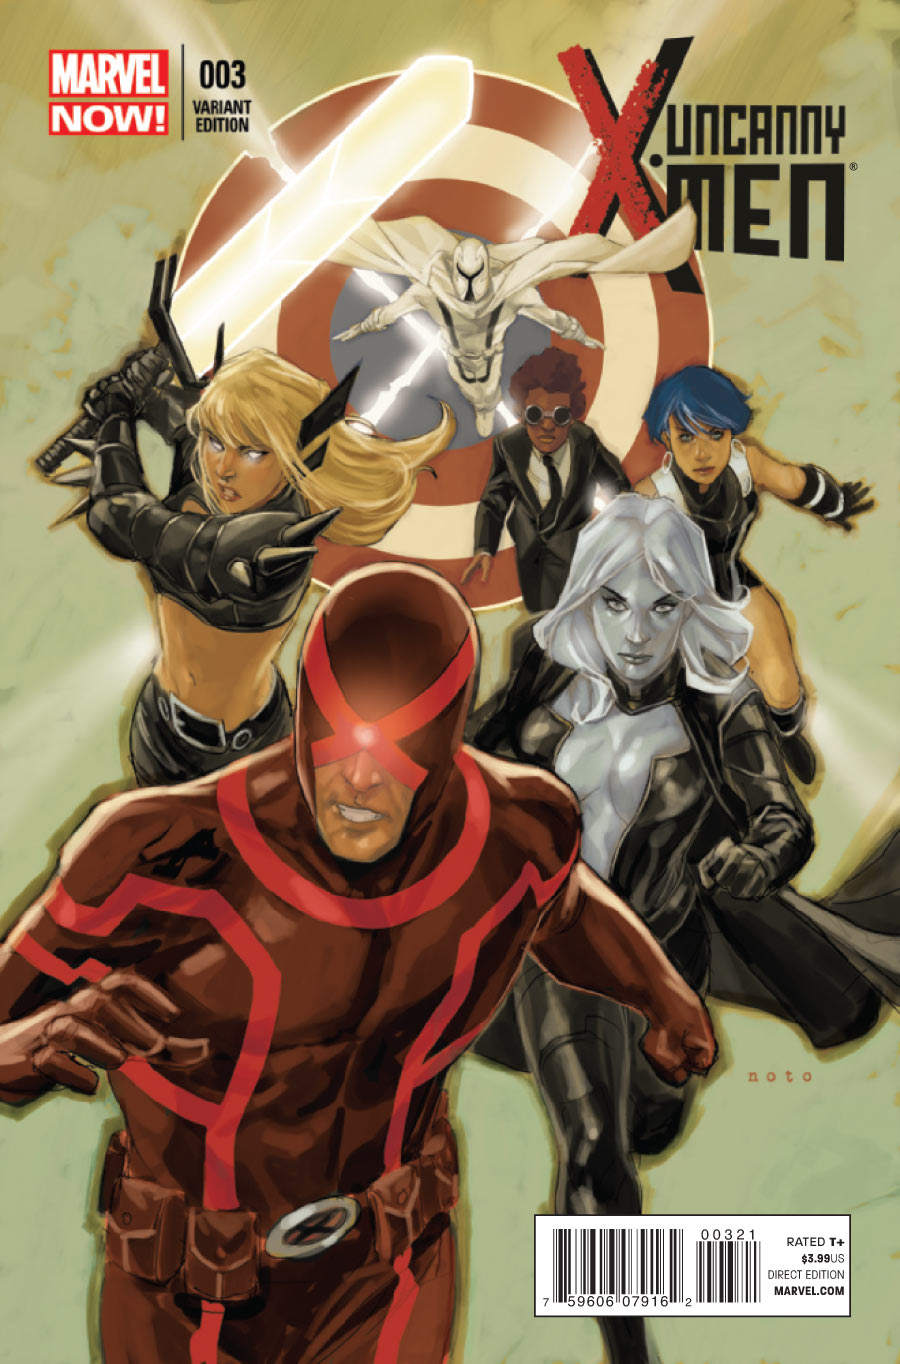 http://img4.wikia.nocookie.net/__cb20130311212457/marveldatabase/images/6/6a/Uncanny_X-Men_Vol_3_3_Phil_Noto_Variant.jpg